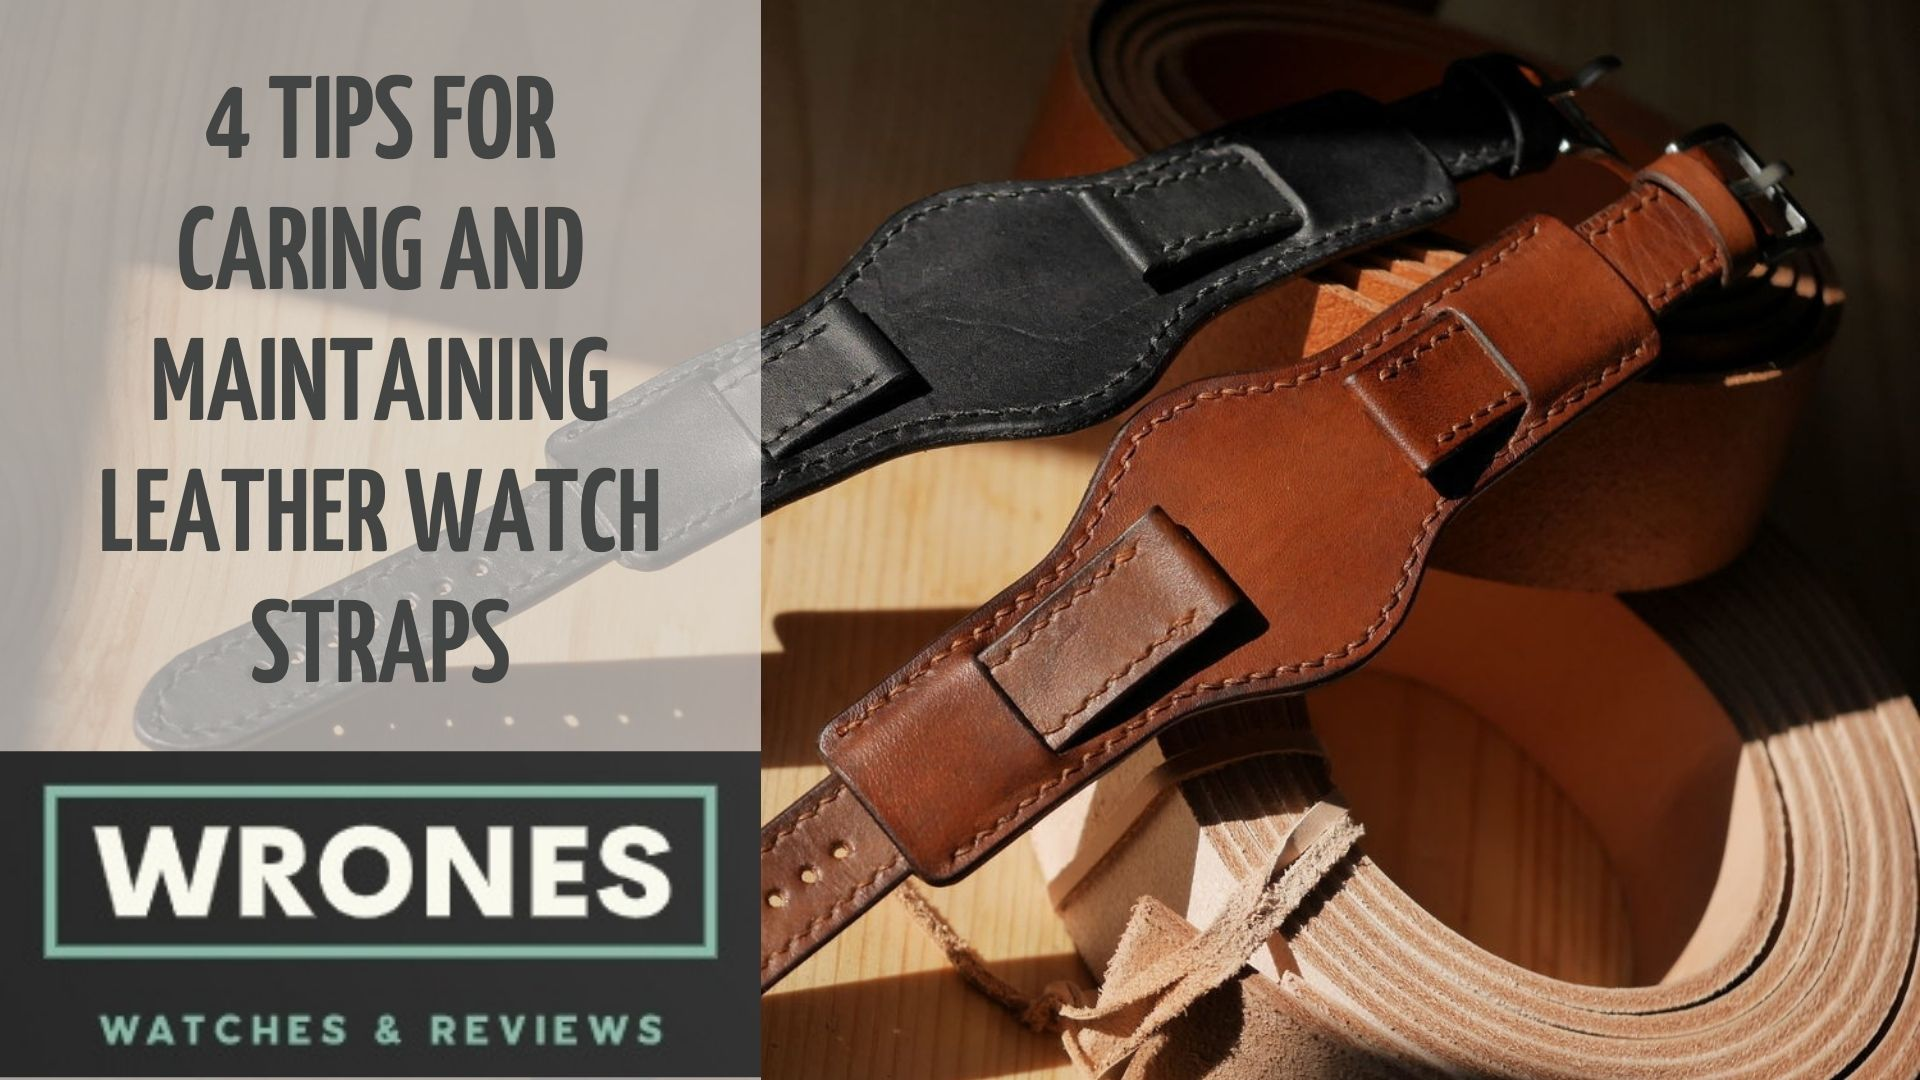 4 Tips for Caring and Maintaining Leather Watch Straps wrones